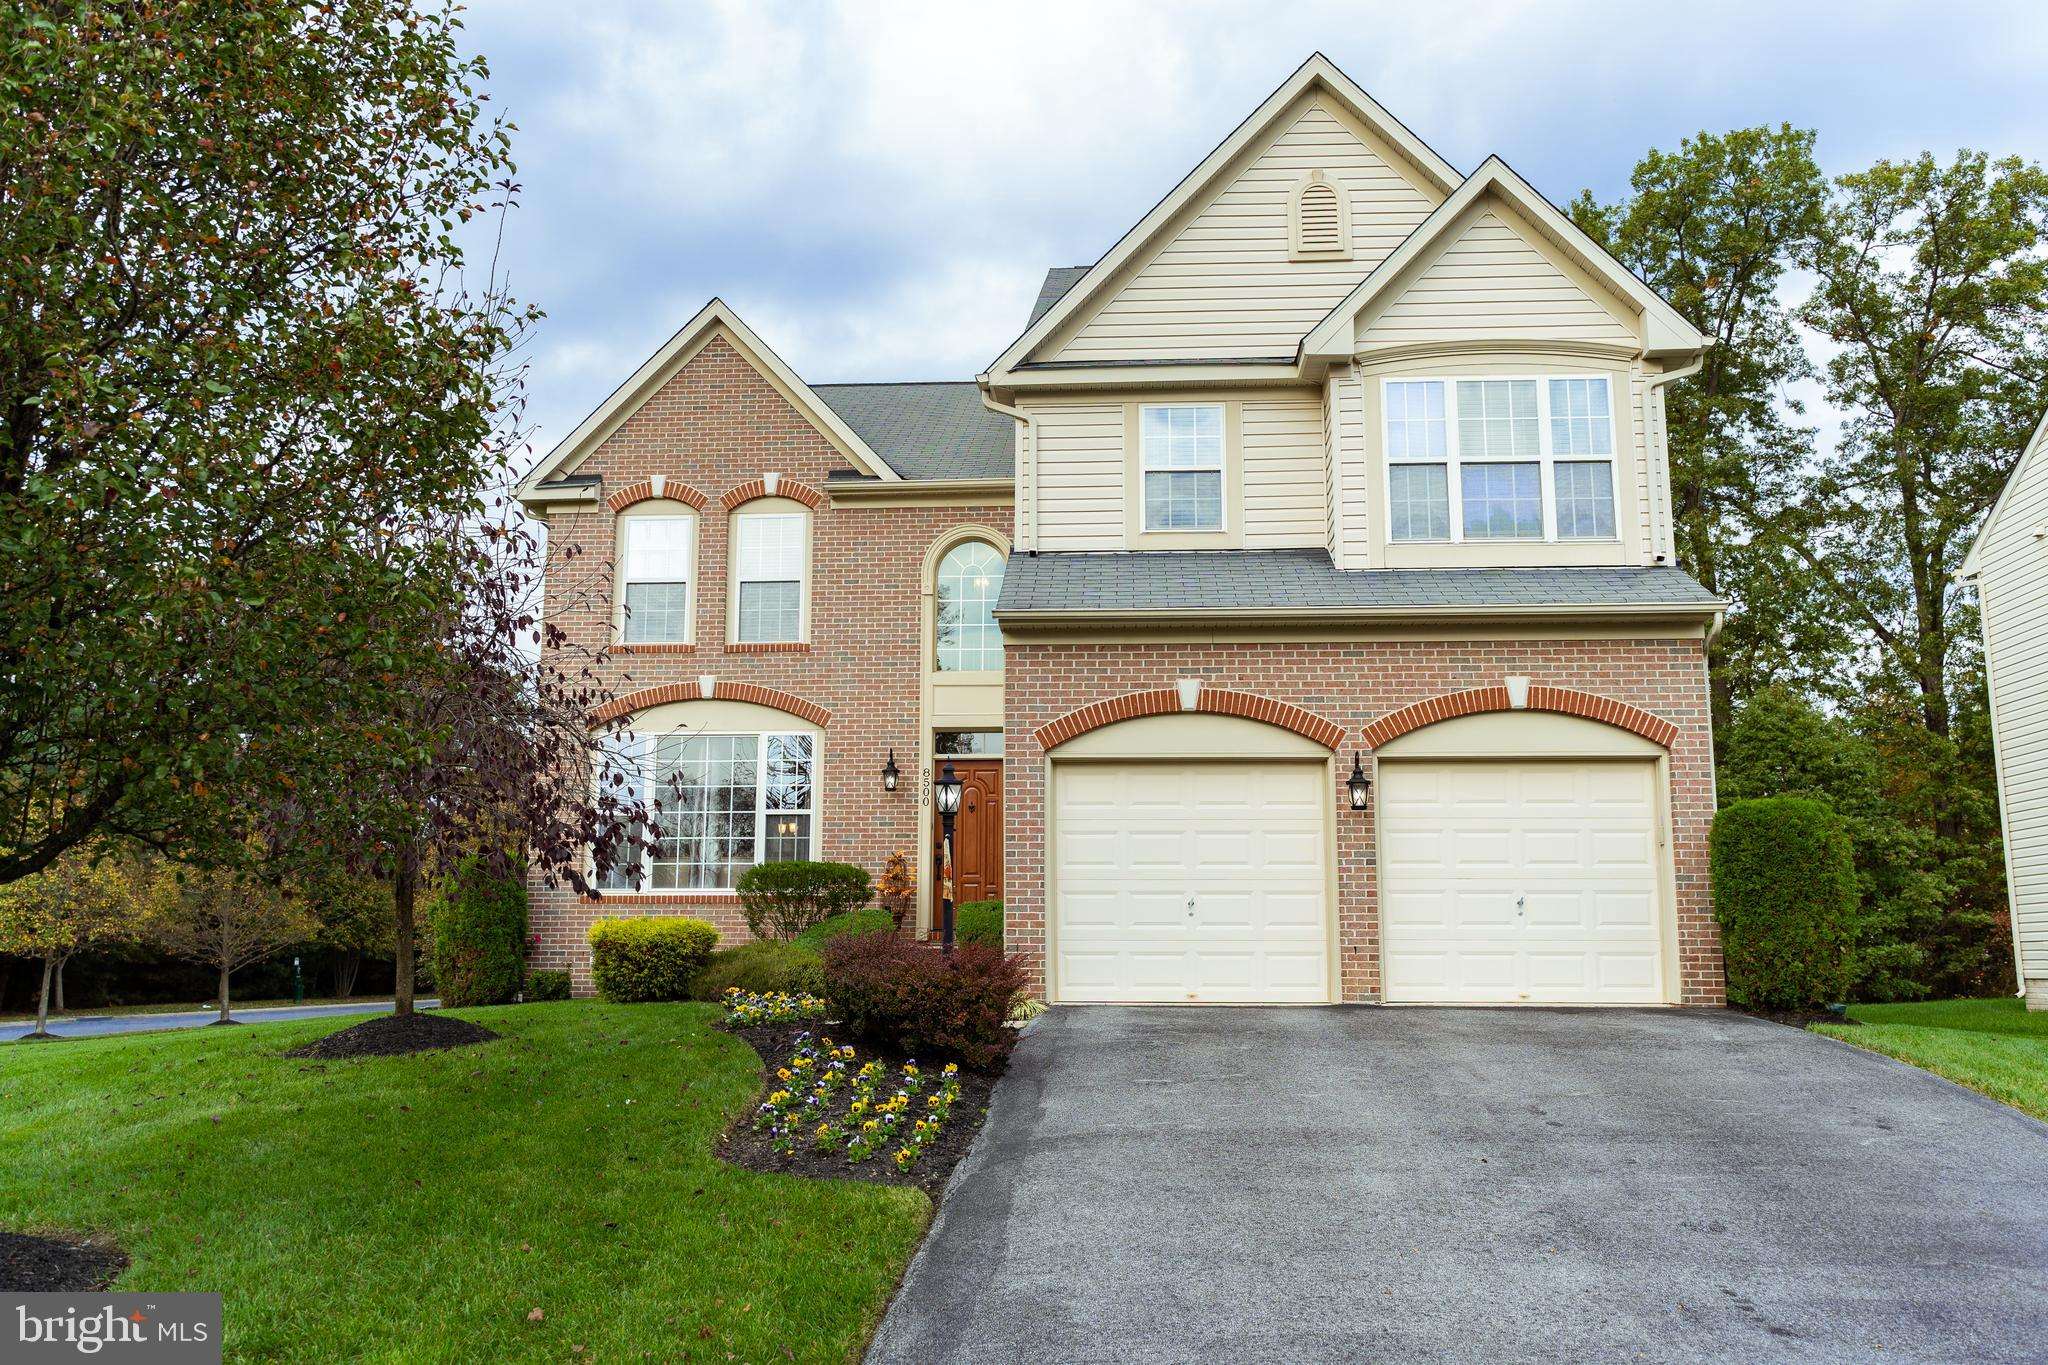 PRICE REDUCED! Welcome home! This 4 BR, 3.5 bath former model home awaits the most discerning of buy